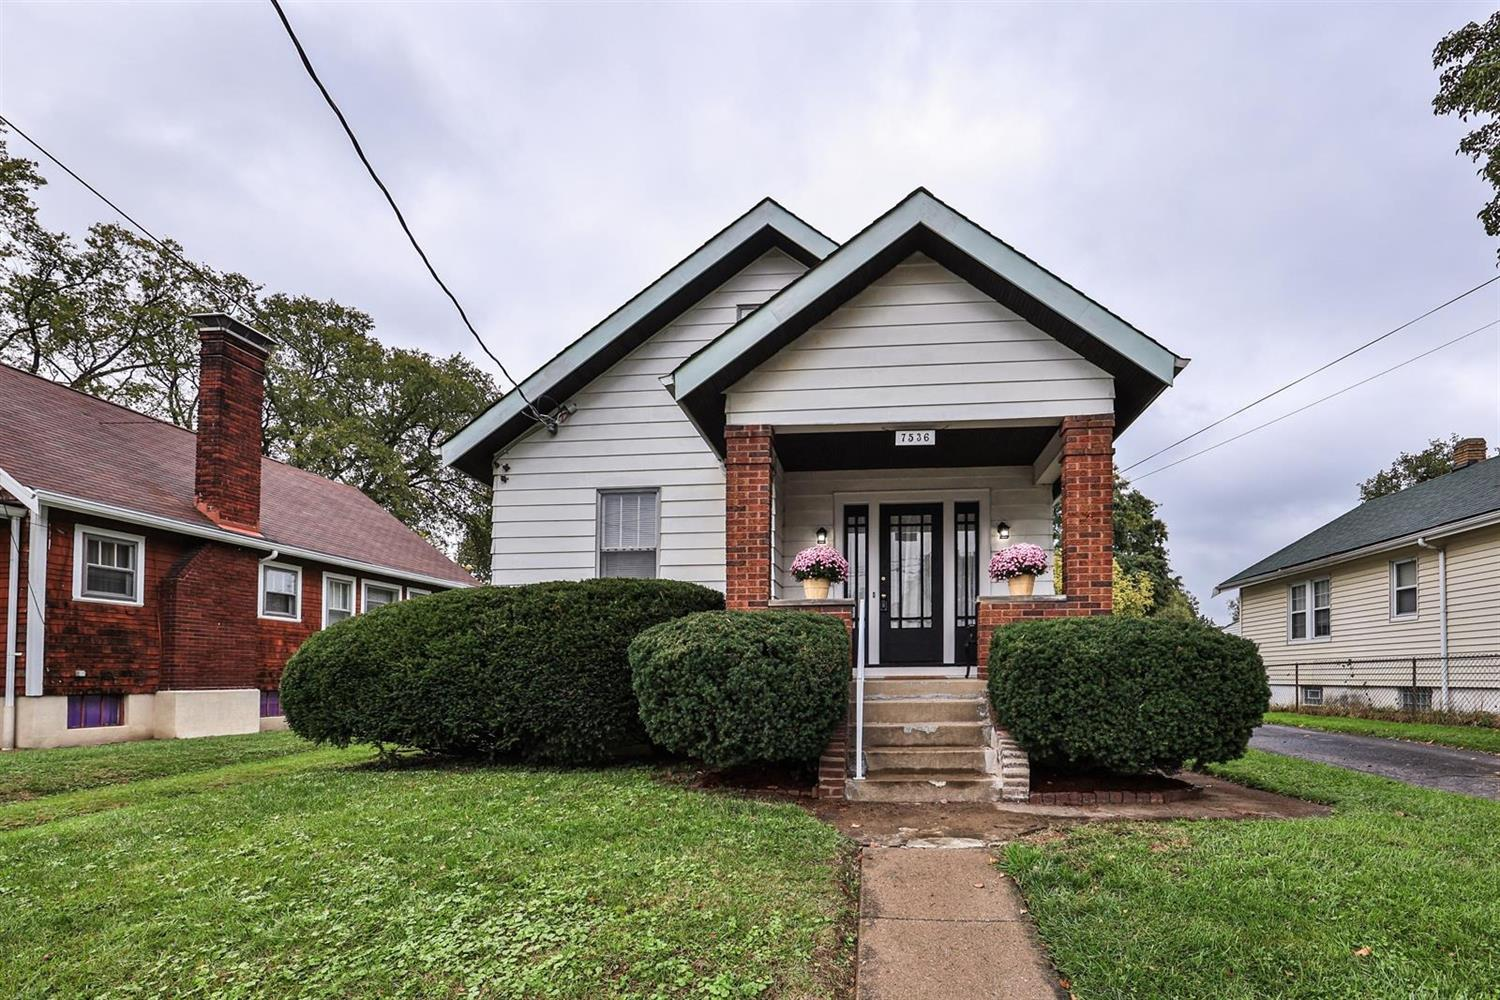 7536 Abbie Place, Springfield Twp., Ohio 45237, 2 Bedrooms Bedrooms, 6 Rooms Rooms,1 BathroomBathrooms,Single Family Residence,For Sale,Abbie,1719245